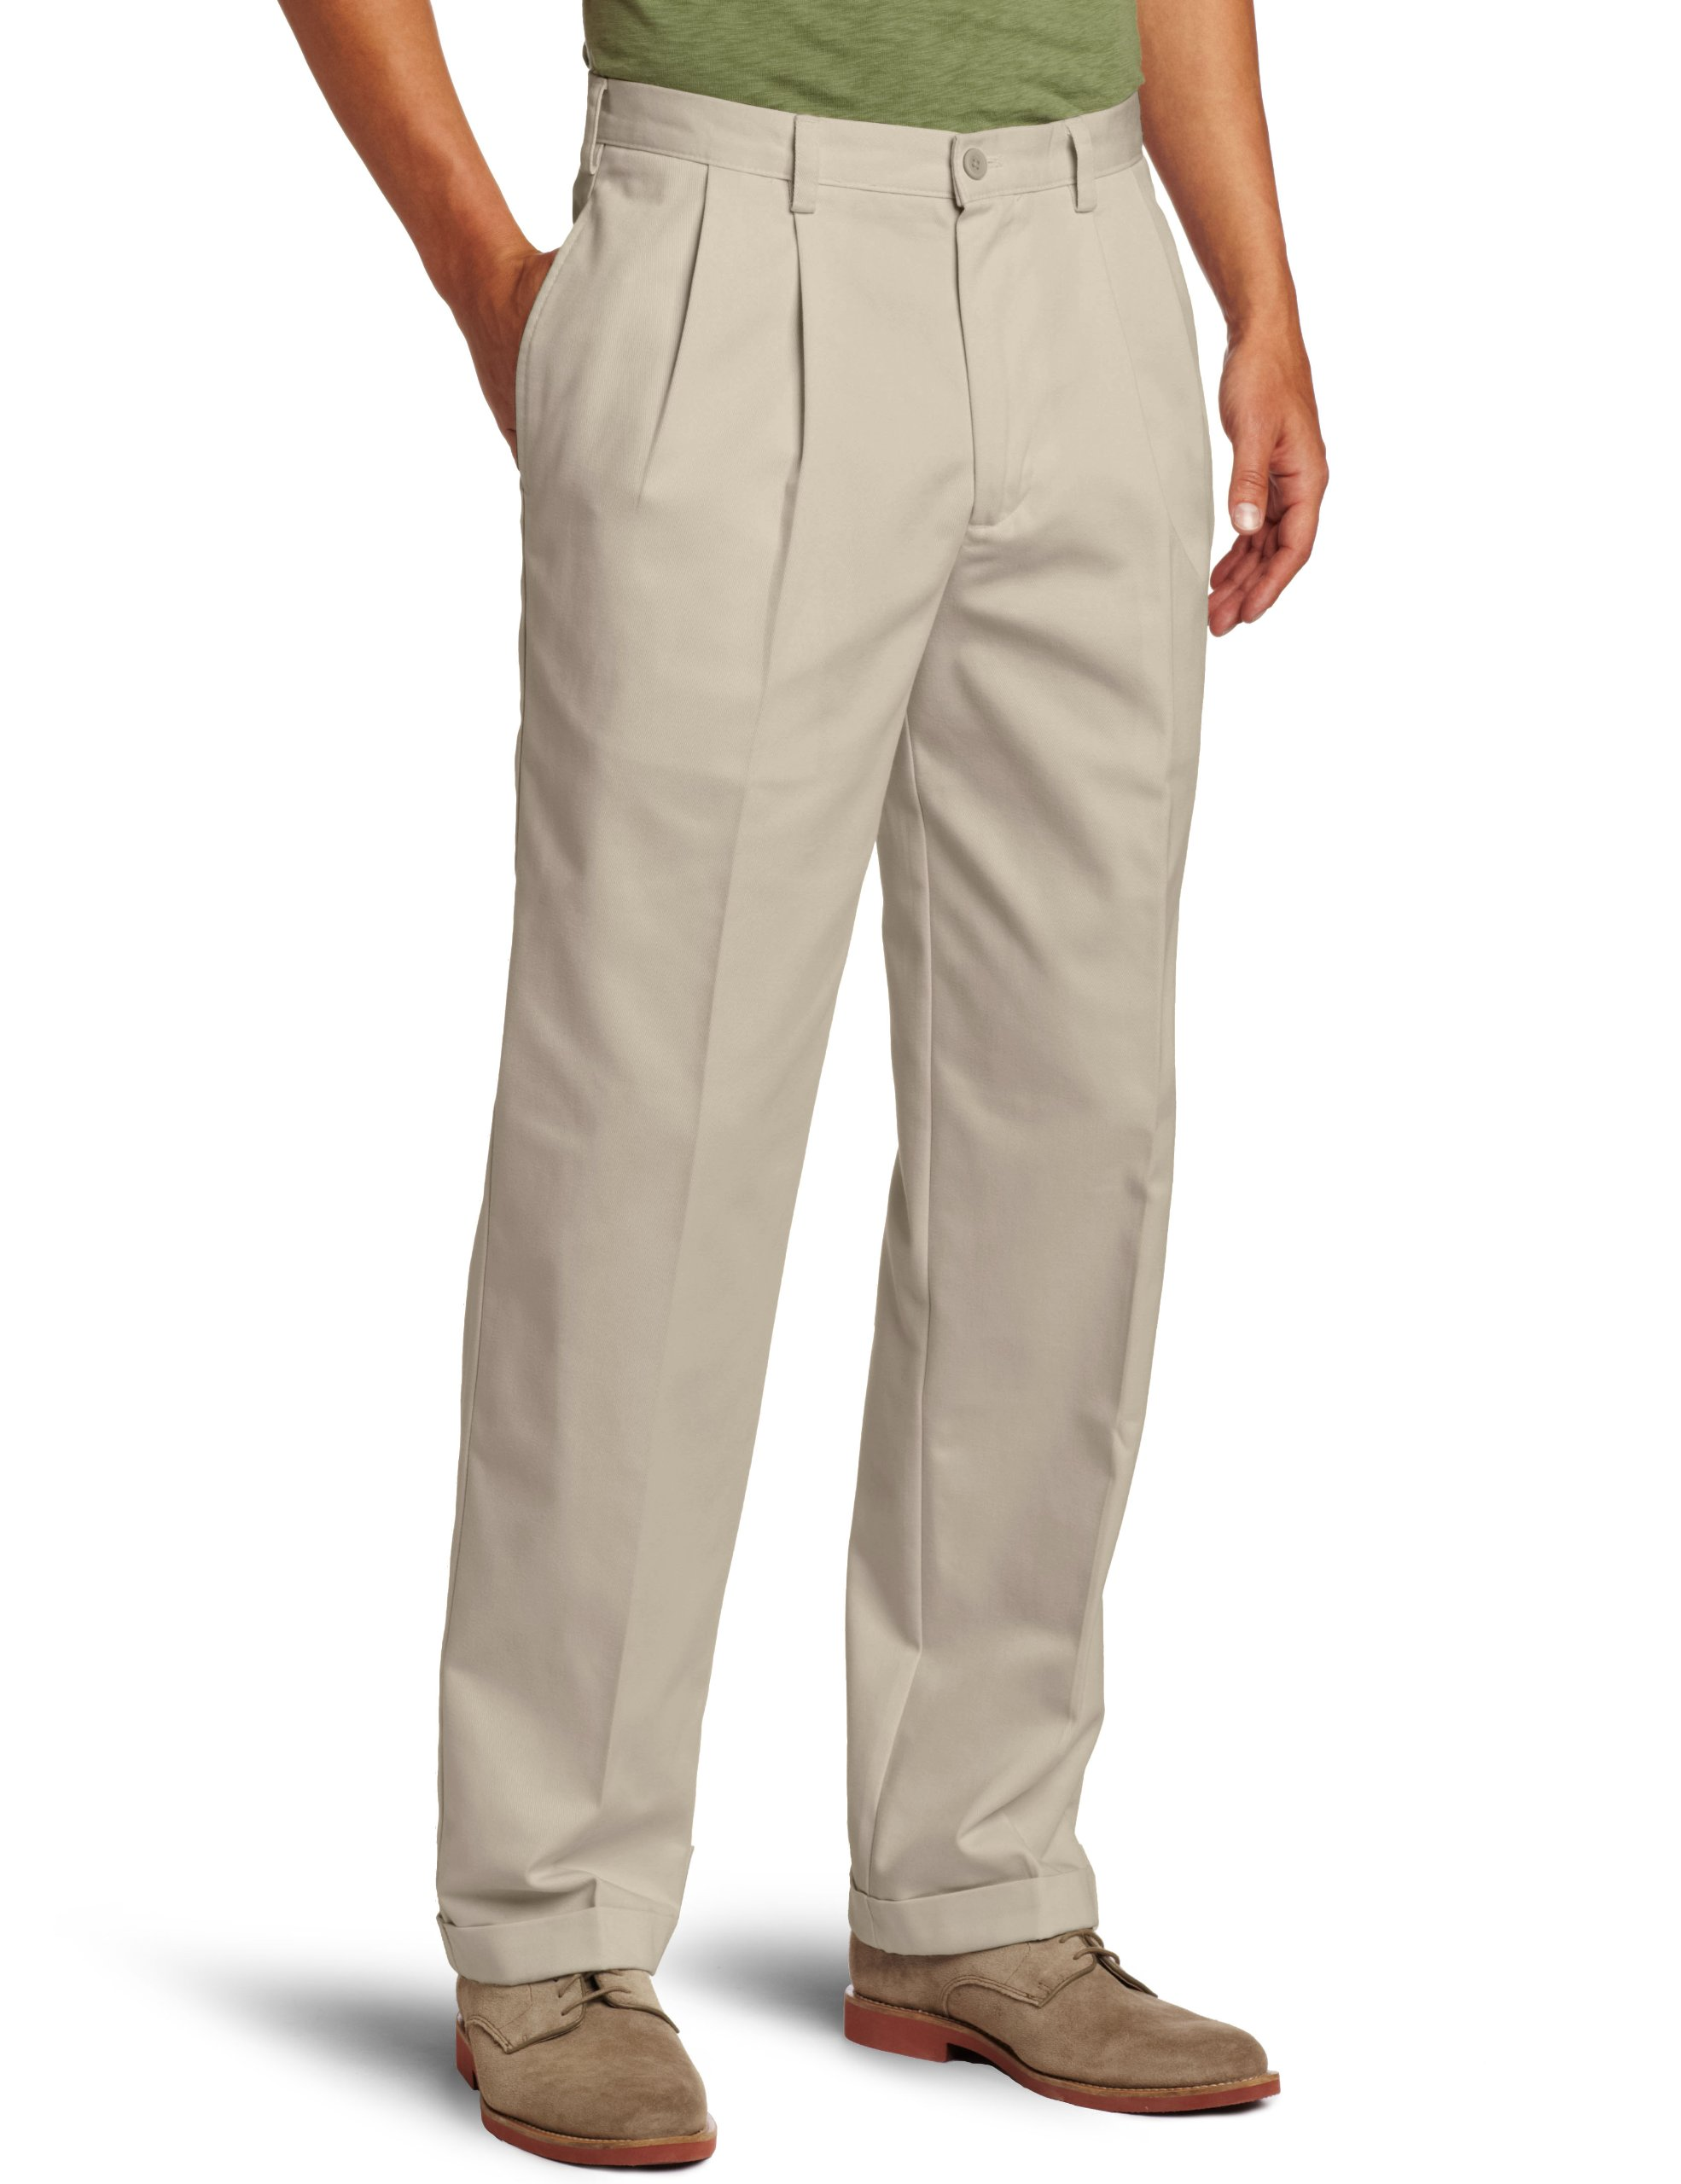 IZOD Men's American Chino Pleated Pant, Khaki, 32W x 30L